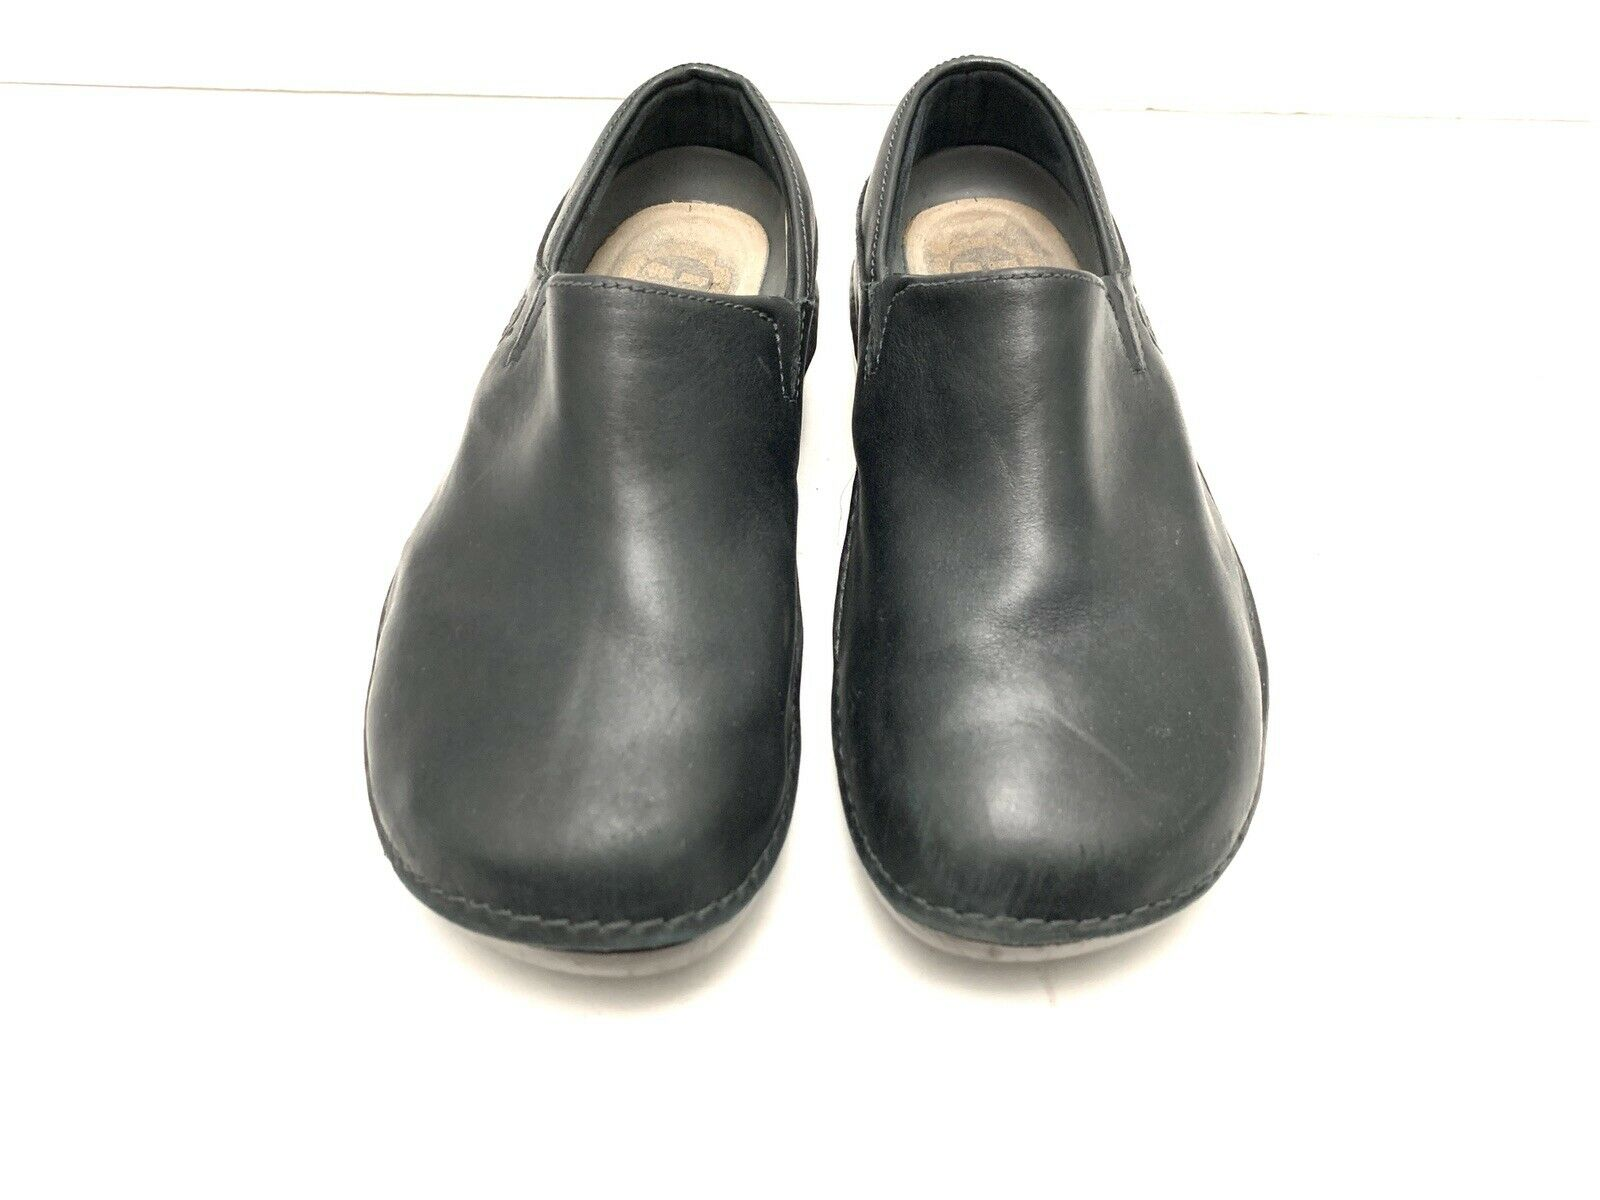 Timberland Women's mules Black Leather Size US 5.5 M read 85613